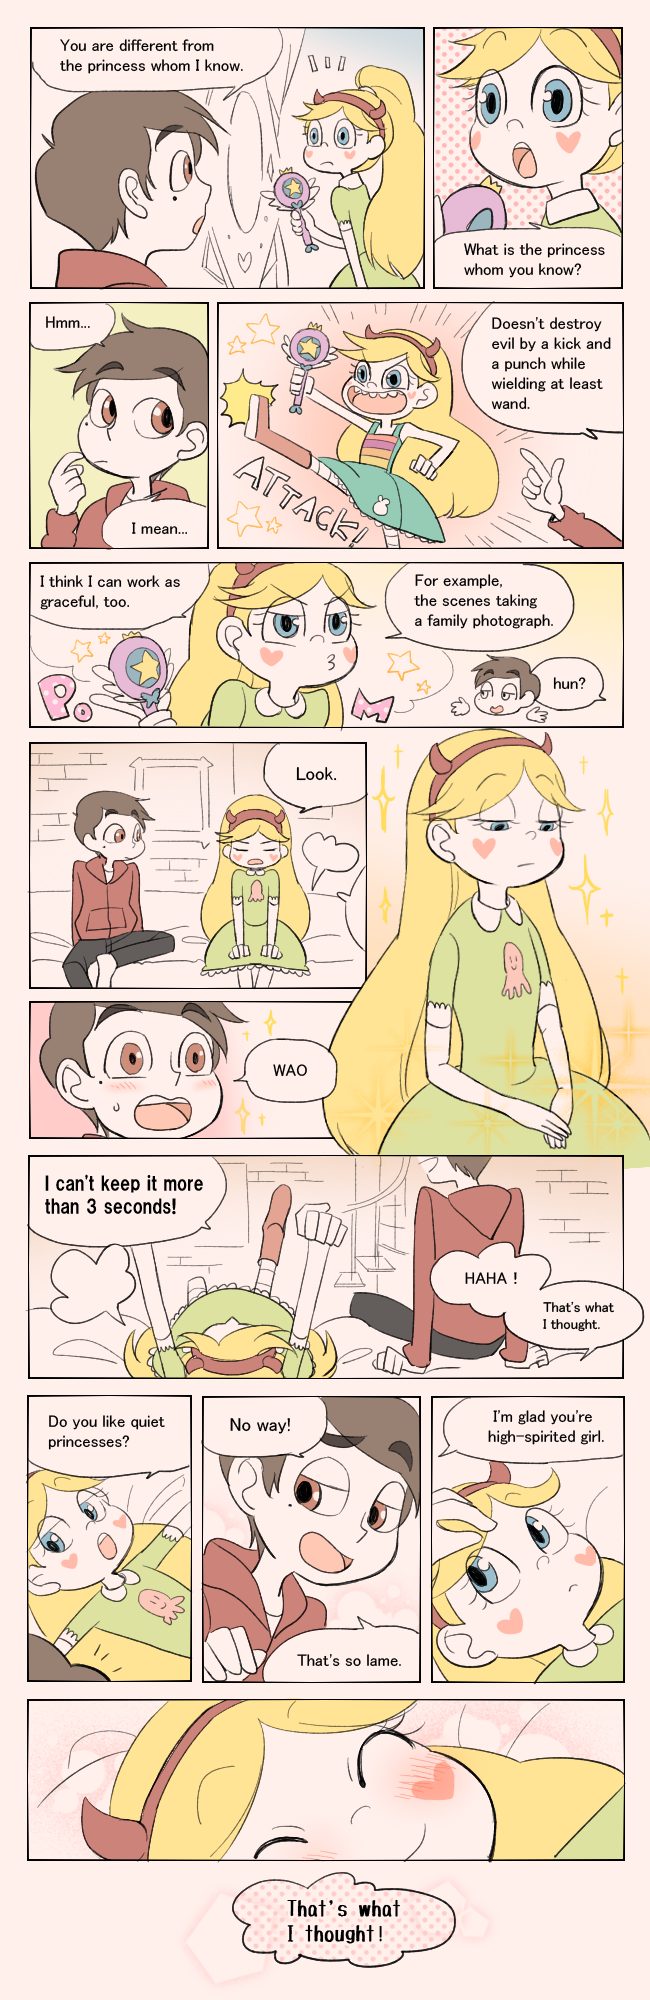 They\'re bestie! by 48sensei | A star and marco story | Pinterest ...